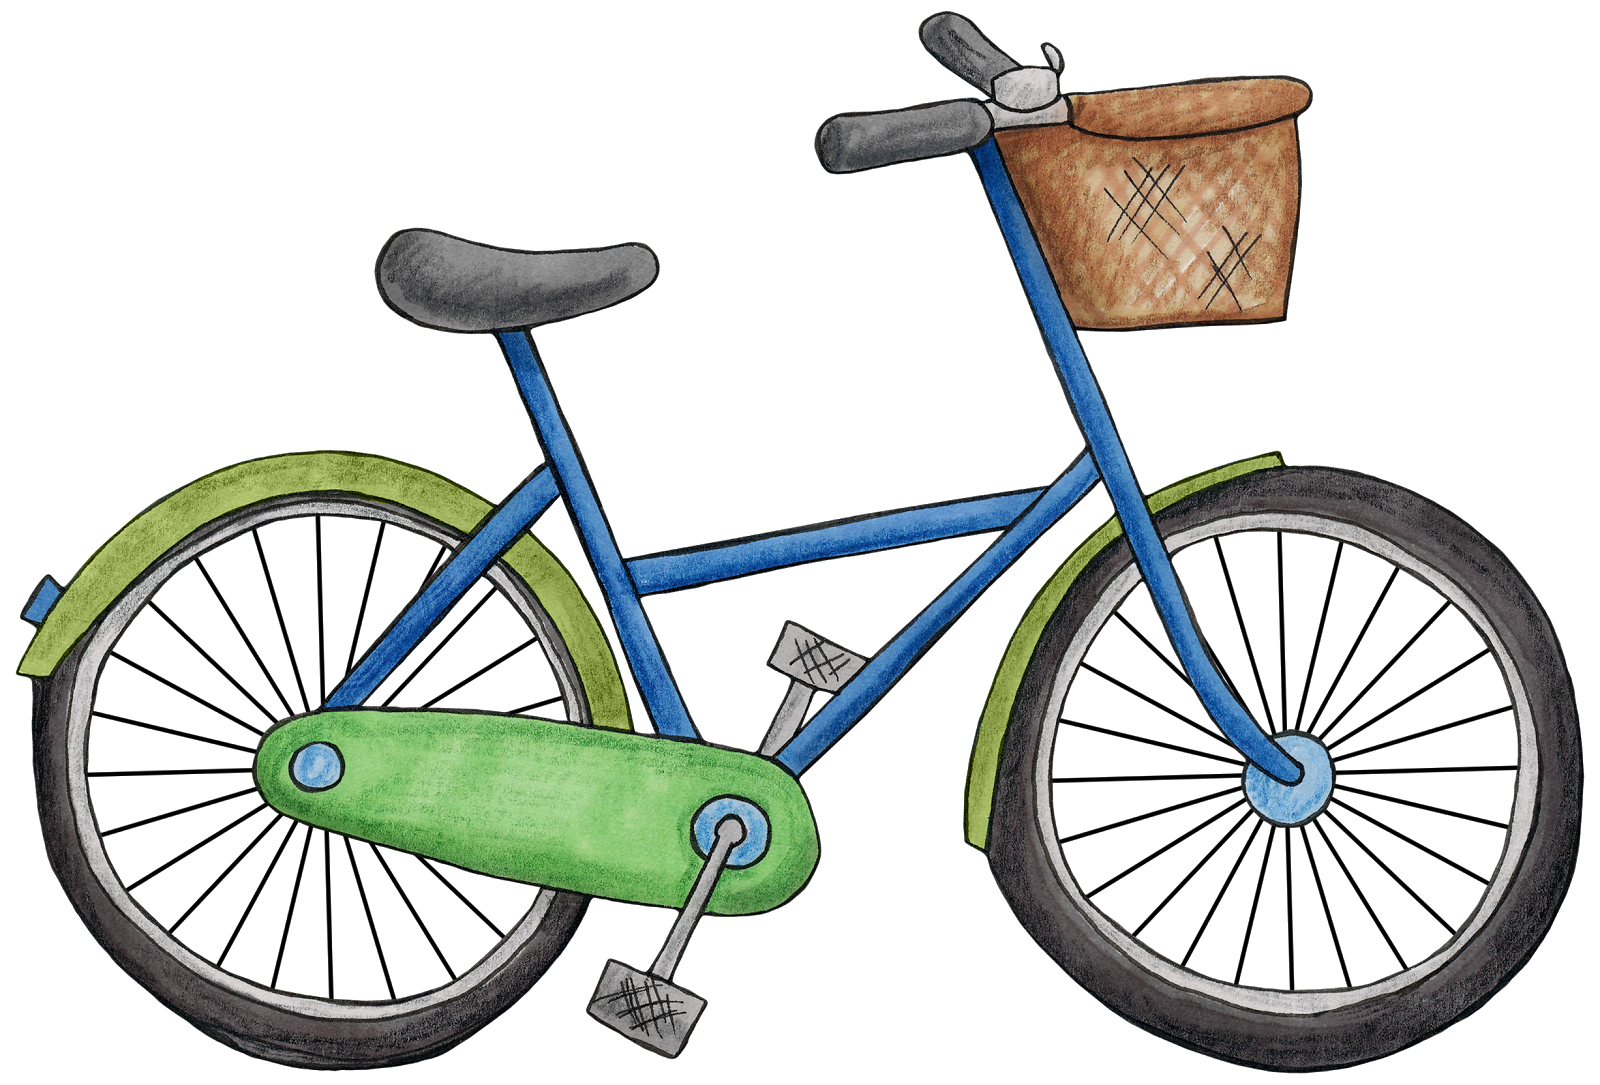 bicycle bicycle png images free bikes transparent clipart images rh freeiconspng com bike clip art images bike clipart free